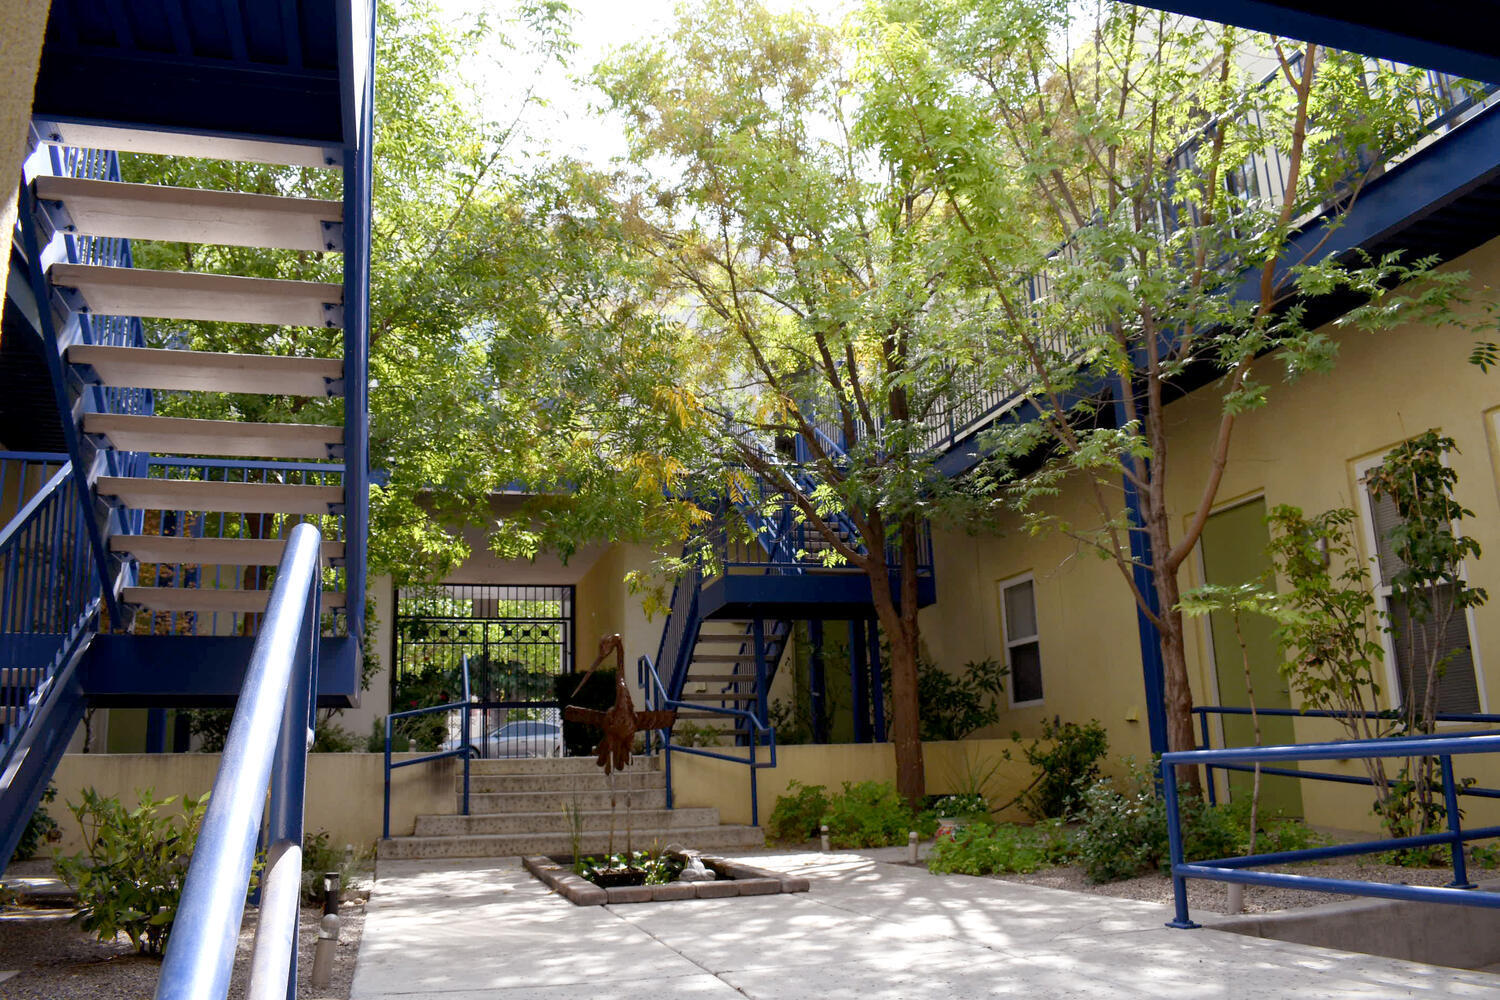 The perfect studio condominium! It is a fantastic building and community. Your very own Pied-a-terre in the Historic Huning Highland district! The courtyard is shady and cool with a great water feature!  This unit is fully updated with modern lighting, finish, floors and a fantastic high-end kitchen. Two head mini-split for climate control. Tasteful colors, high ceilings,  and fantastic light make the space feel big and open! There is a private deck/balcony that gets great morning light. Without a doubt one of the most convenient locations in the city, close to Downtown, UNM, the airport, public transportation and every conceivable service! Thanks very much for looking!